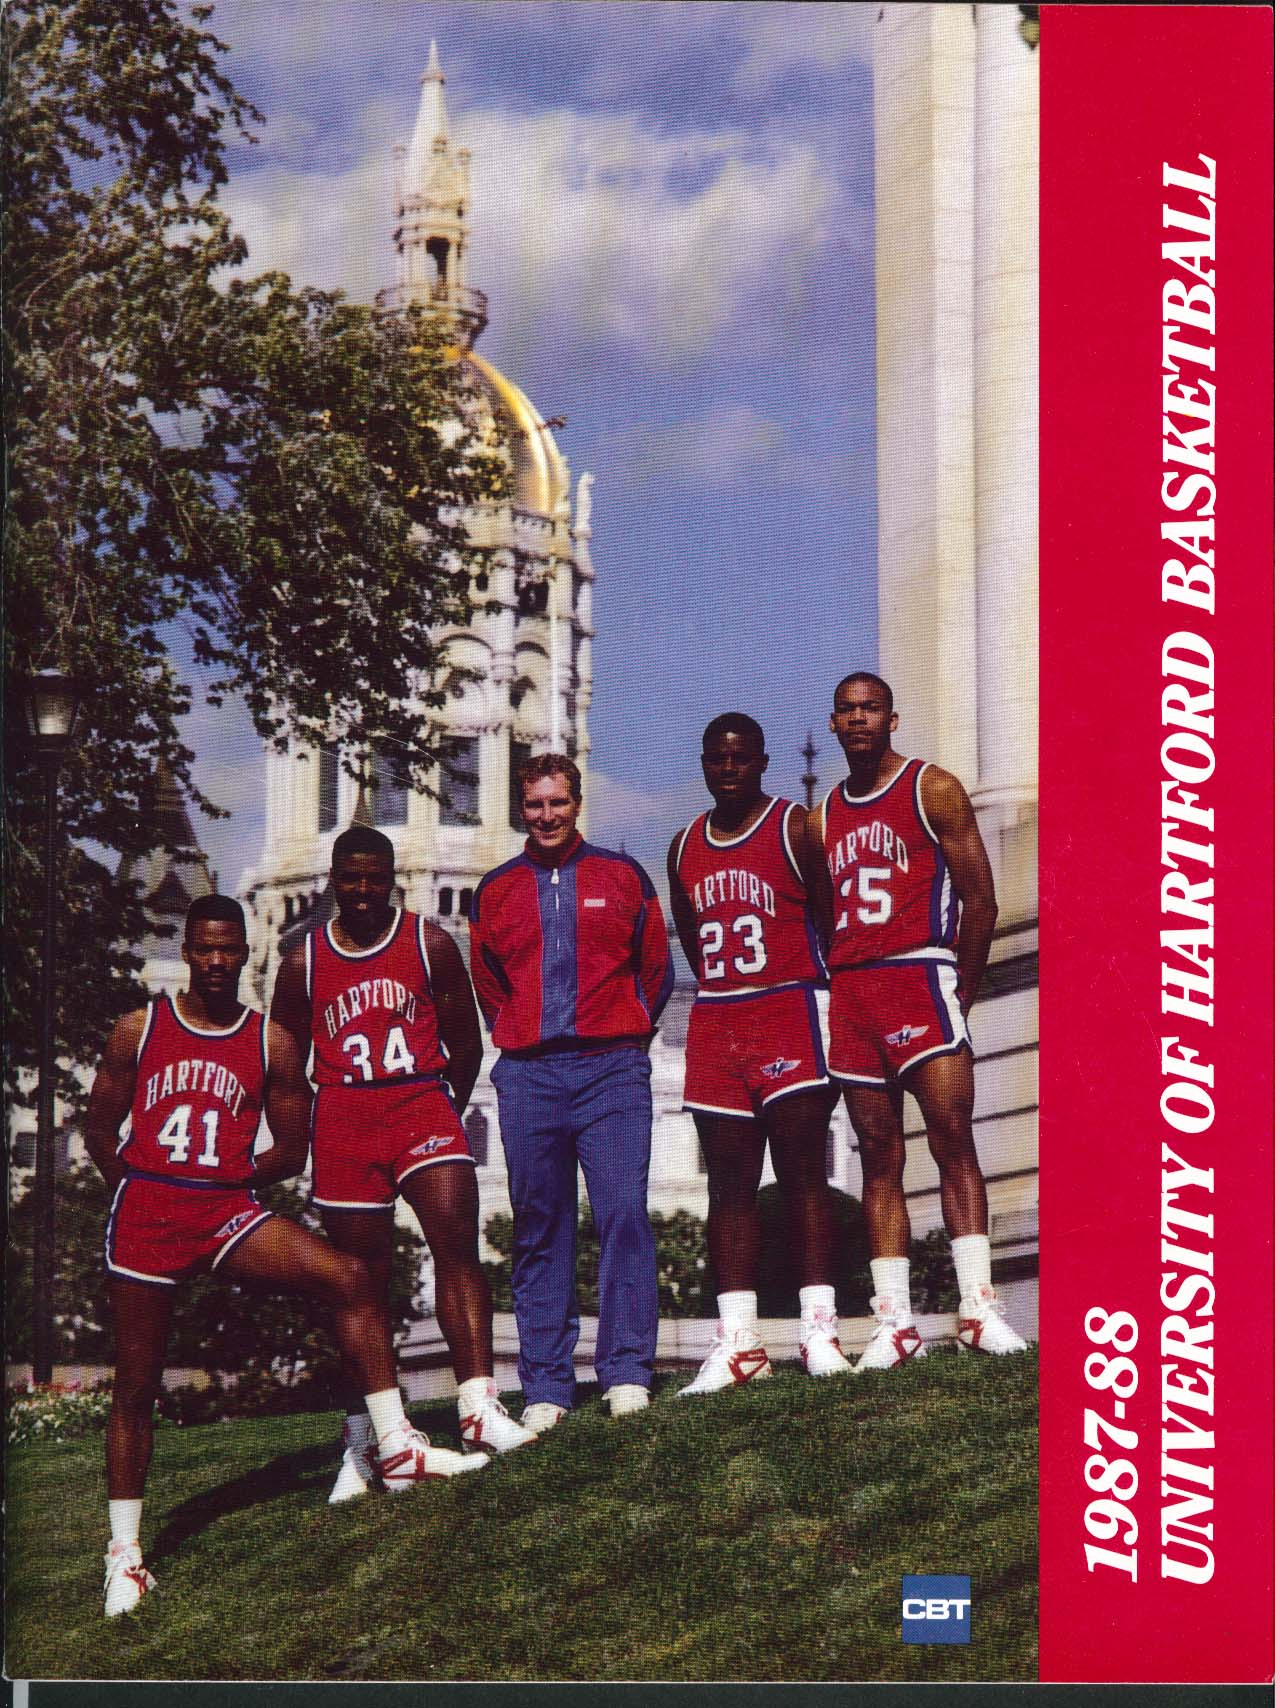 Image for University of Hartford Hawks Basketball 1987 1988 Media Guide Yearbook